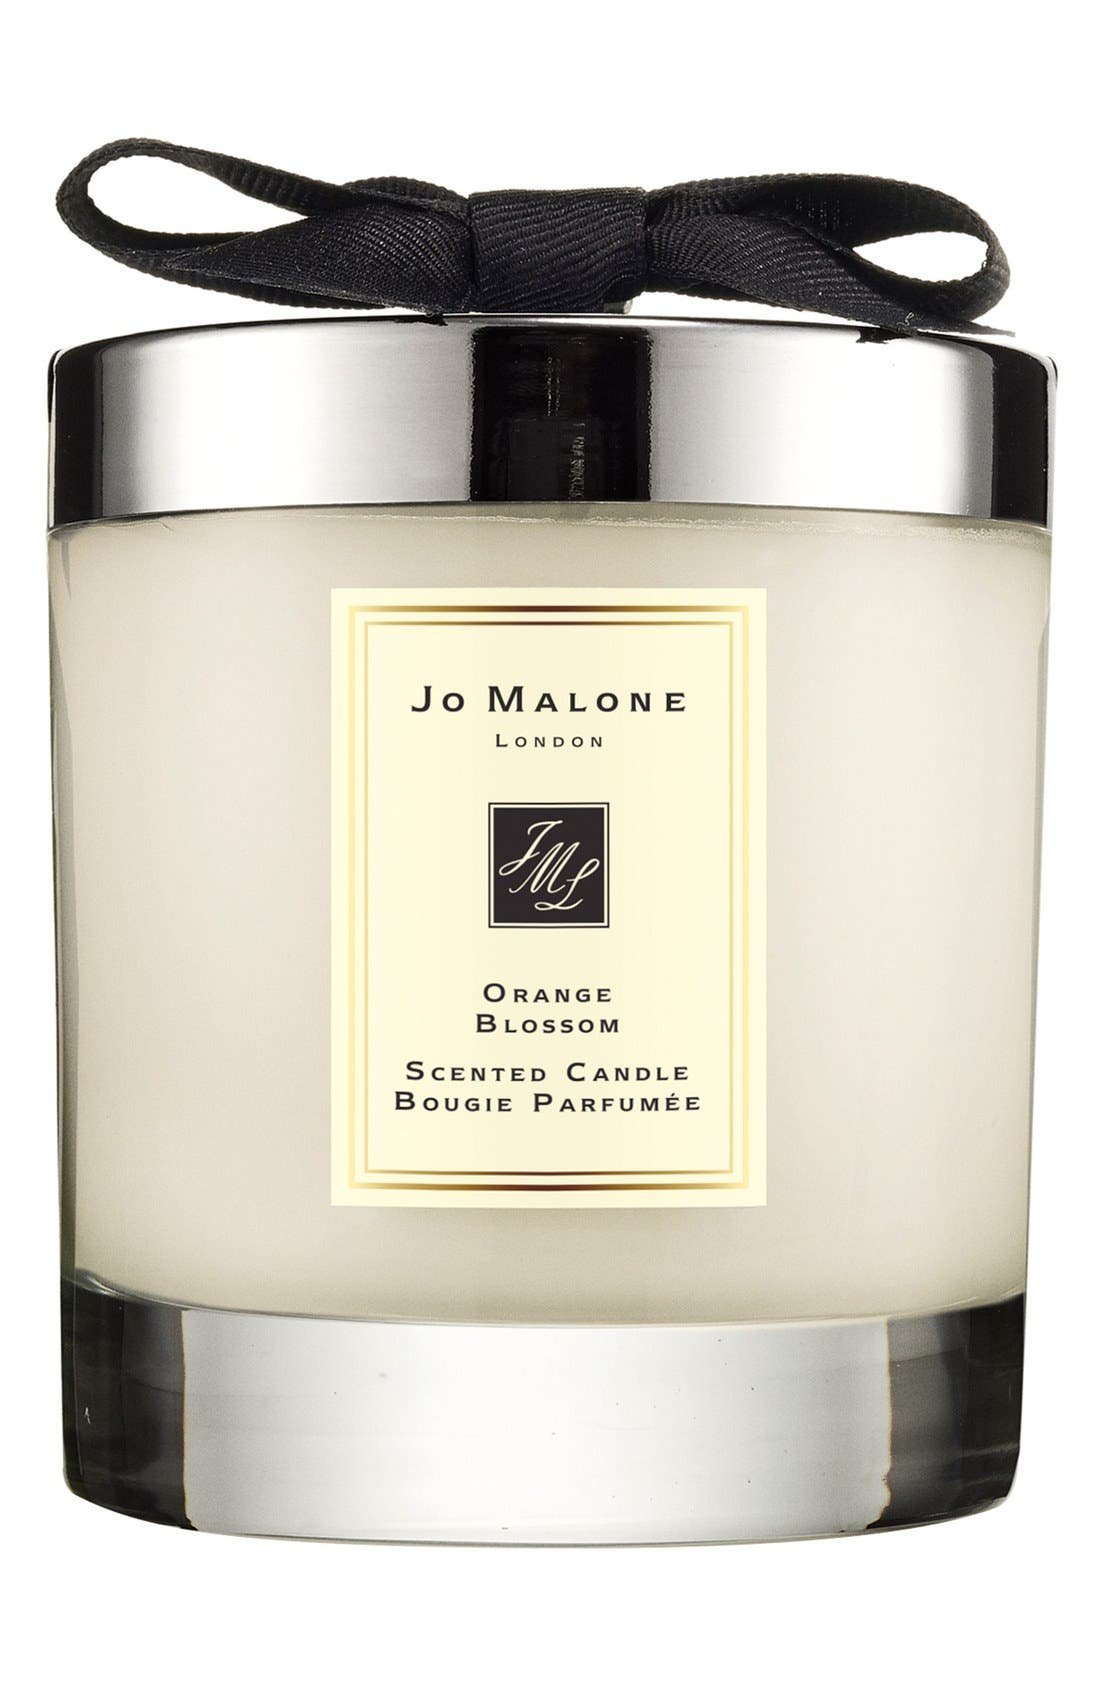 JO MALONE LONDON™ Jo Malone™ 'Orange Blossom' Scented